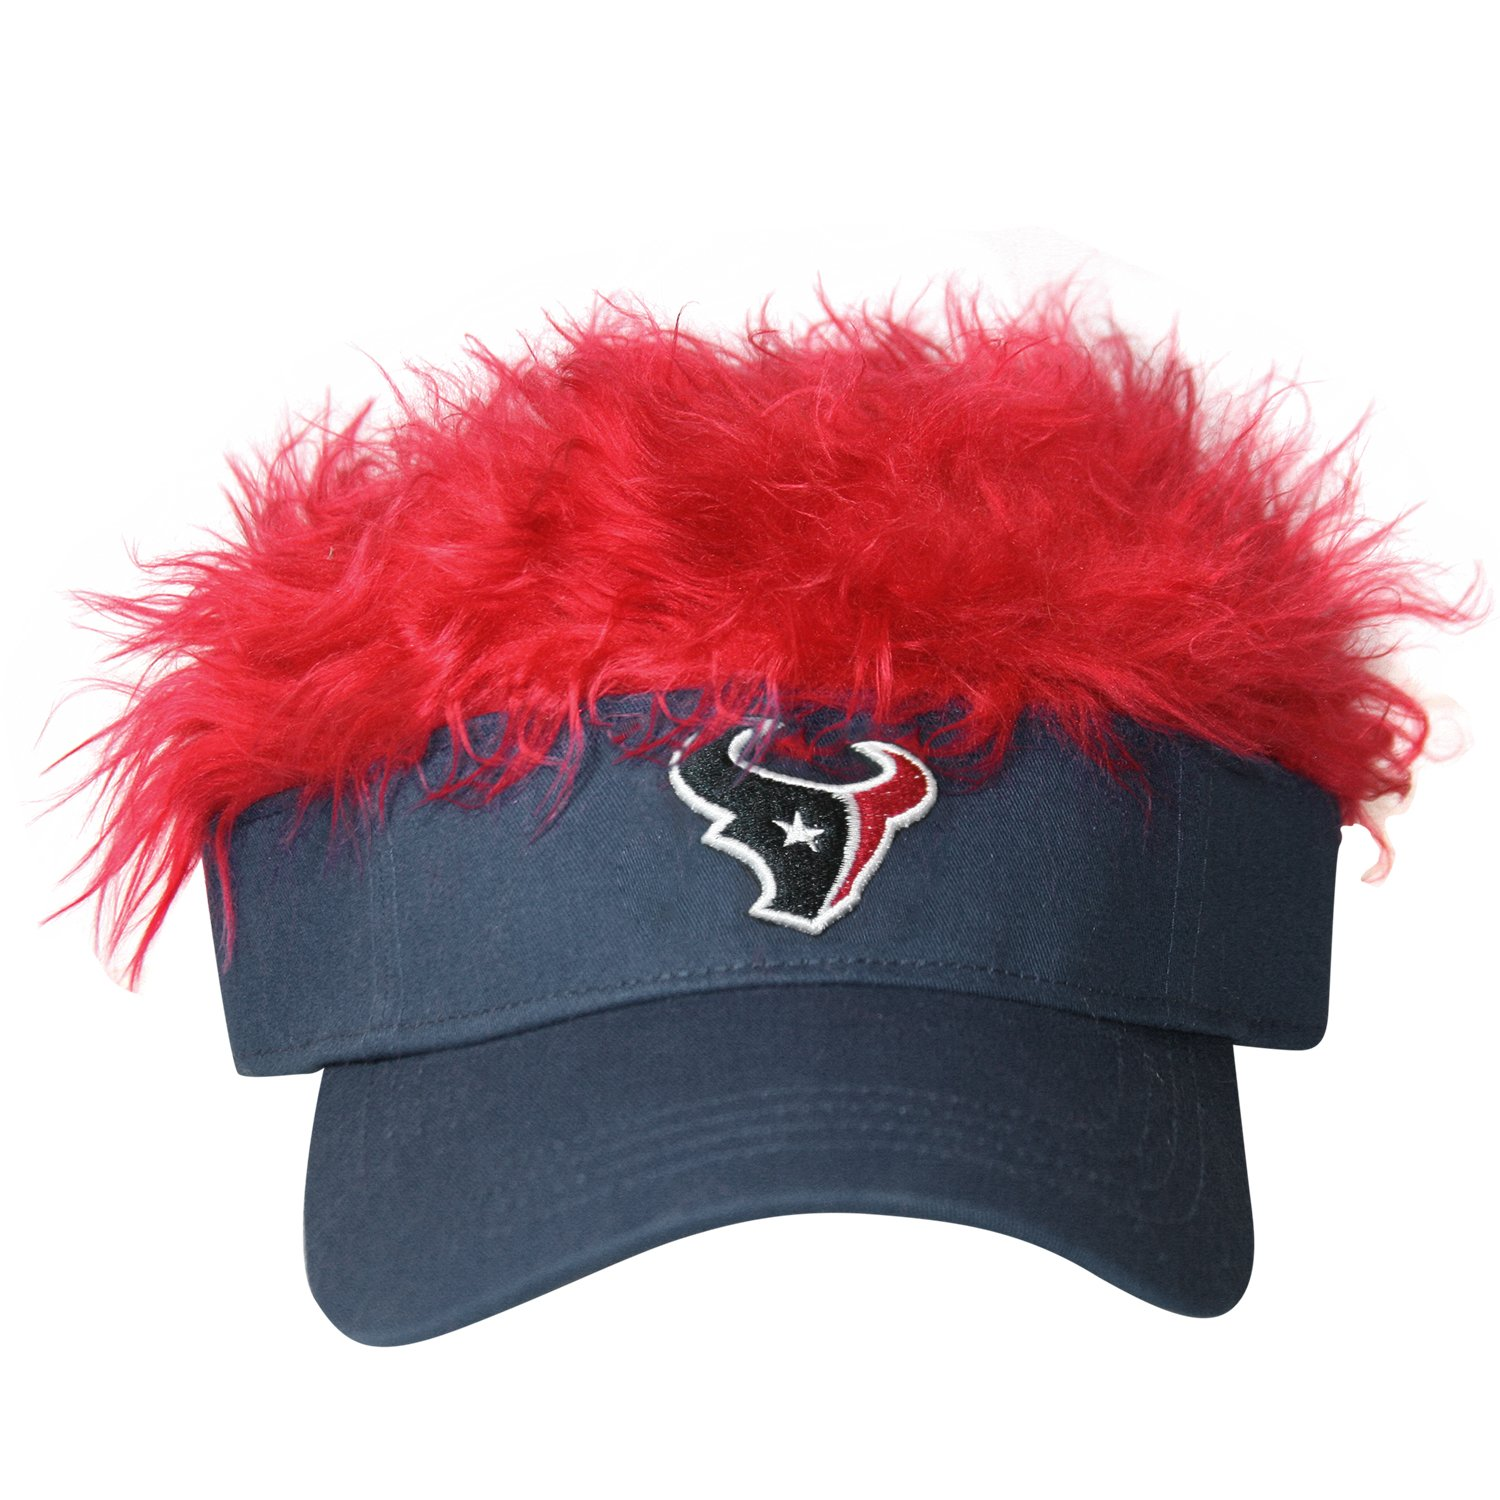 d5dabab8039ae Amazon.com   The Northwest Company NFL Altanta Falcons Flair Hair  Adjustable Visor